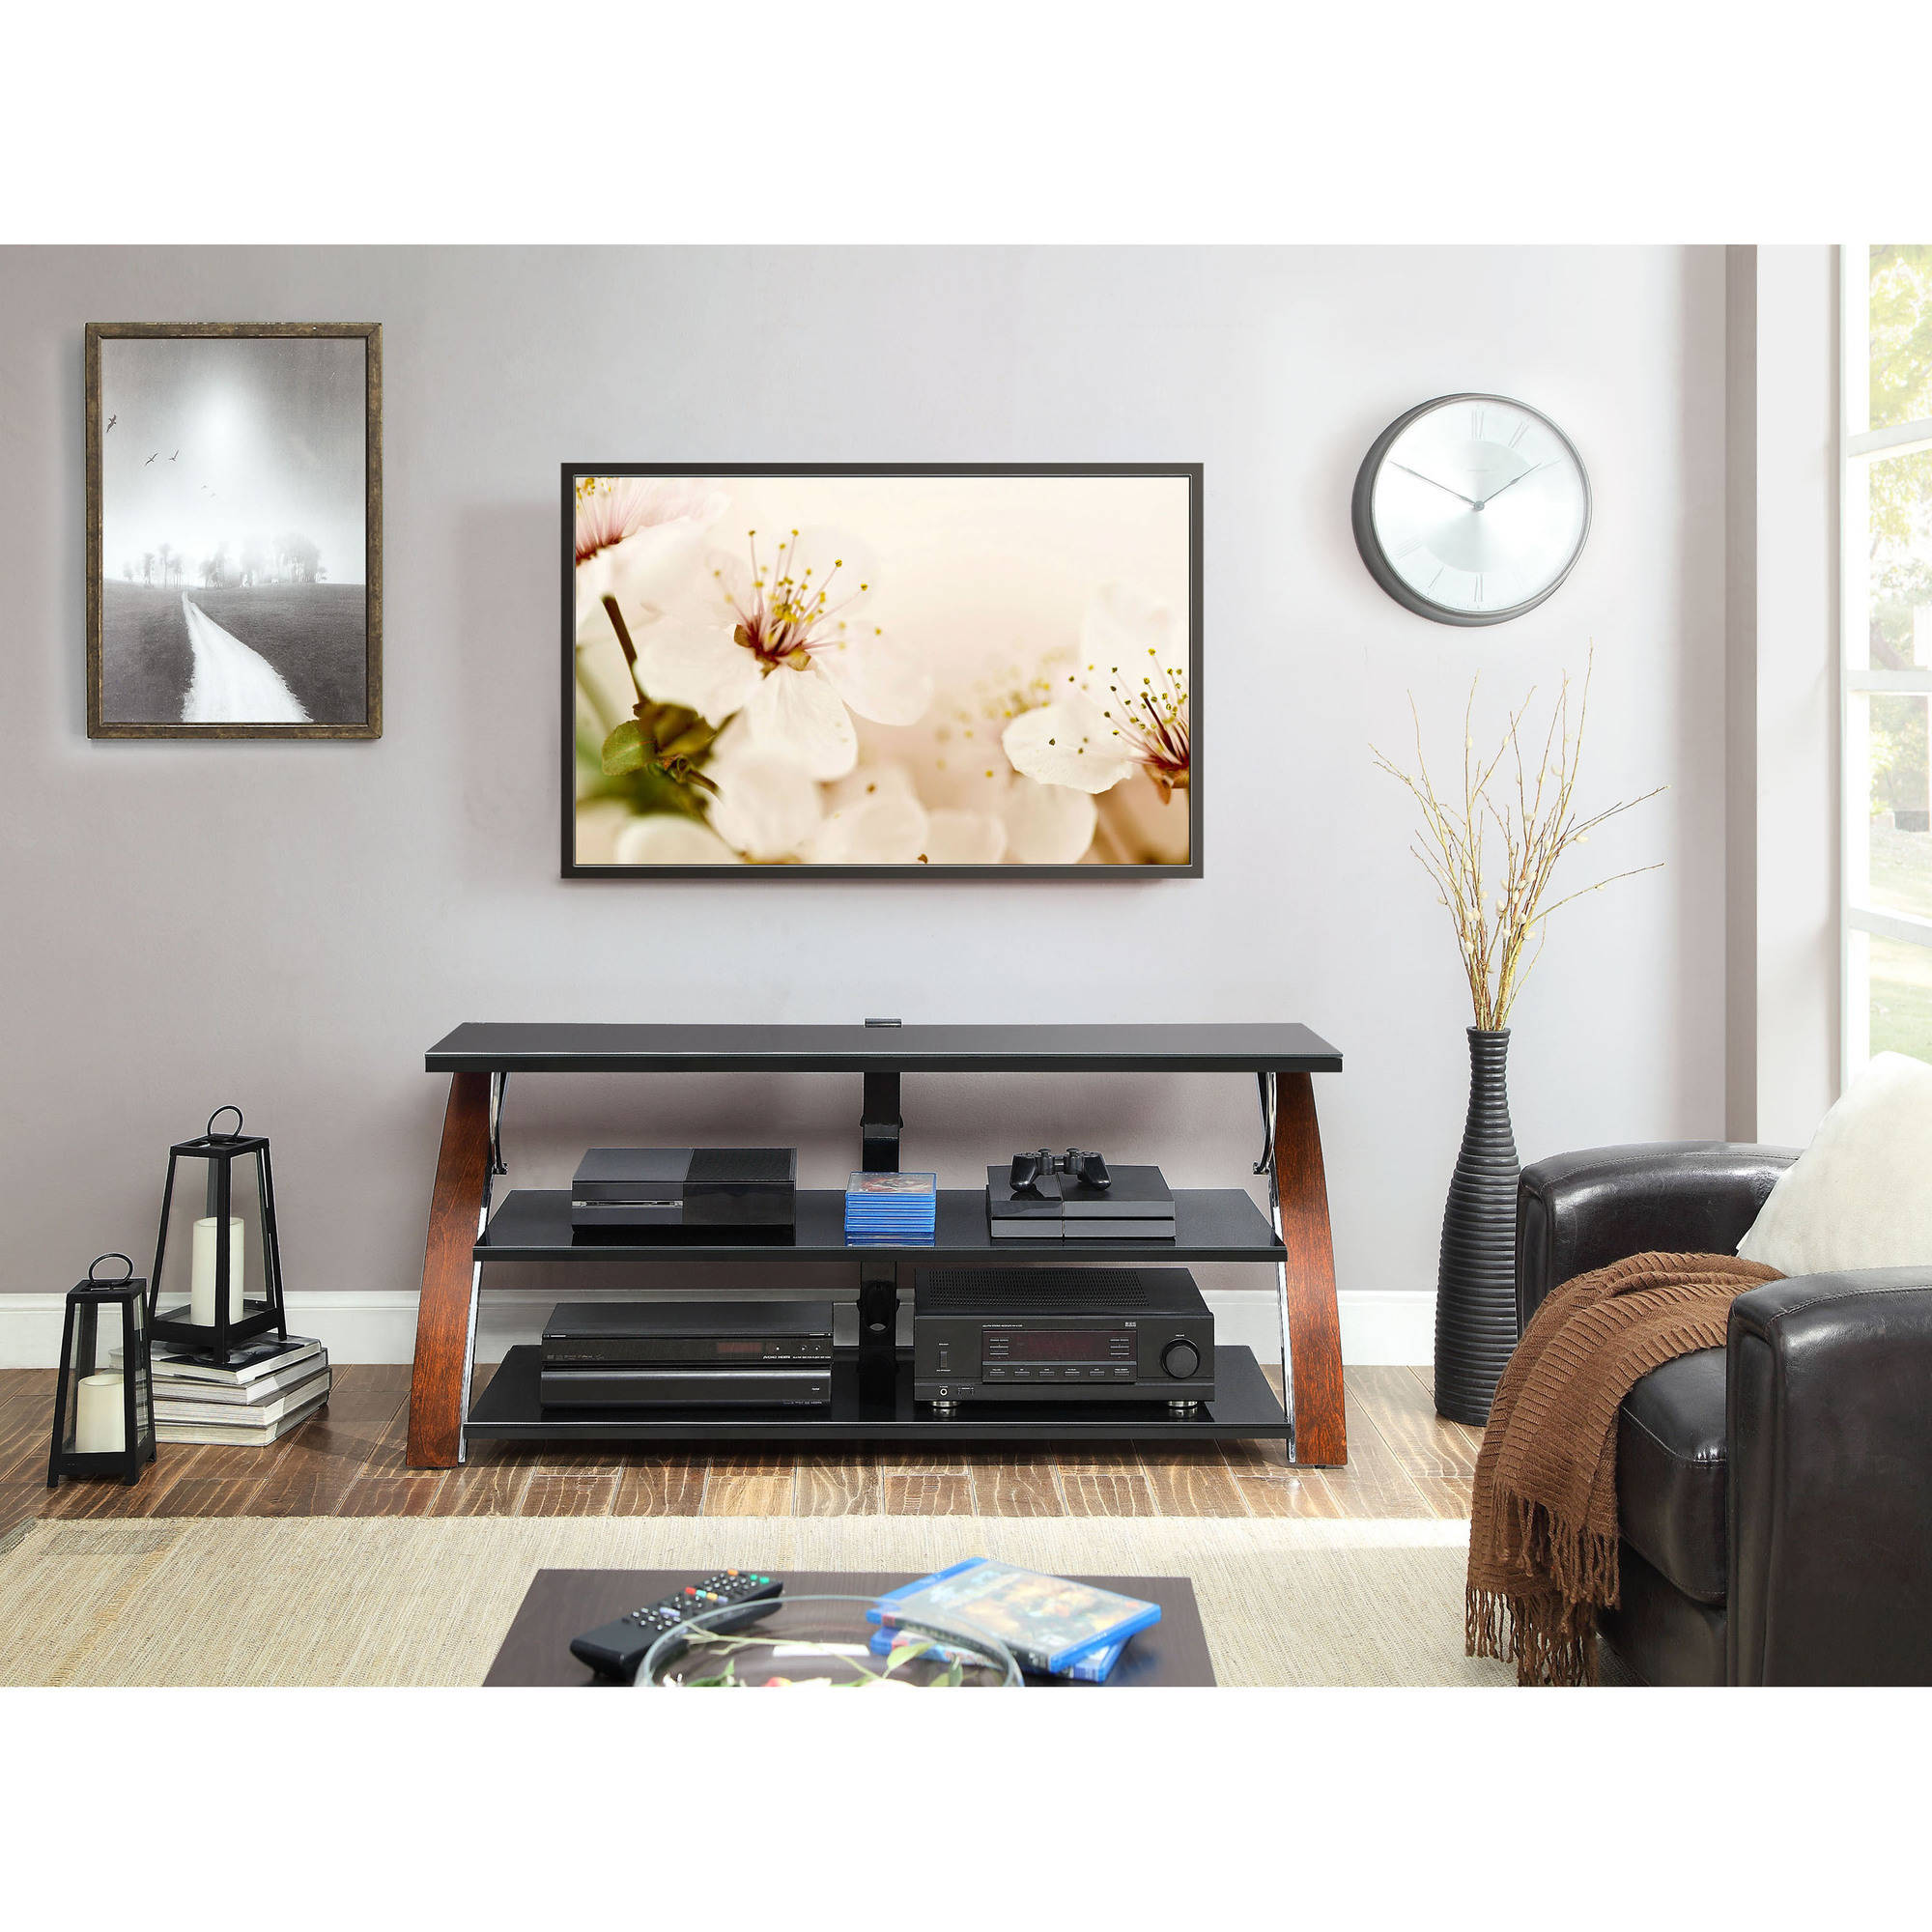 Incredible whalen tv stand for home furniture design with whalen 3-in-1 tv stand